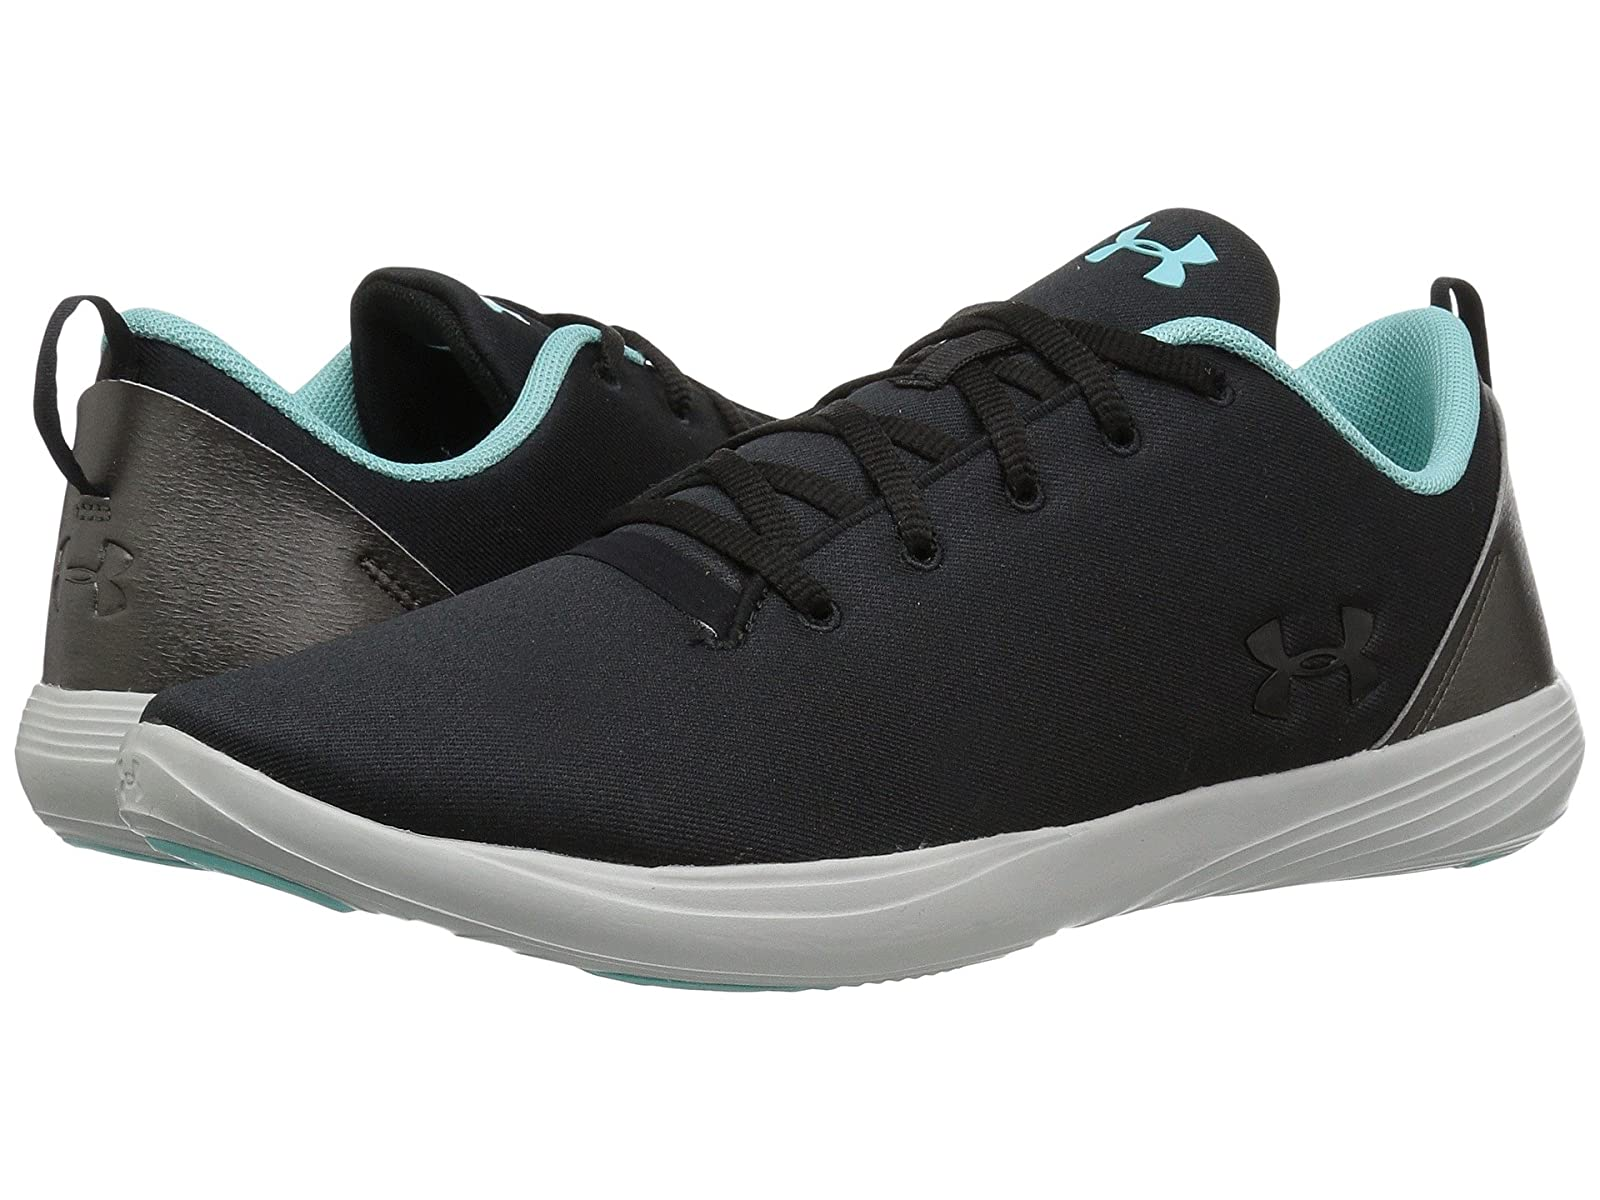 Under Armour UA Street /Gentleman/Lady/Super Precision LO X NM /Gentleman/Lady/Super Street Good Ware 5d174c